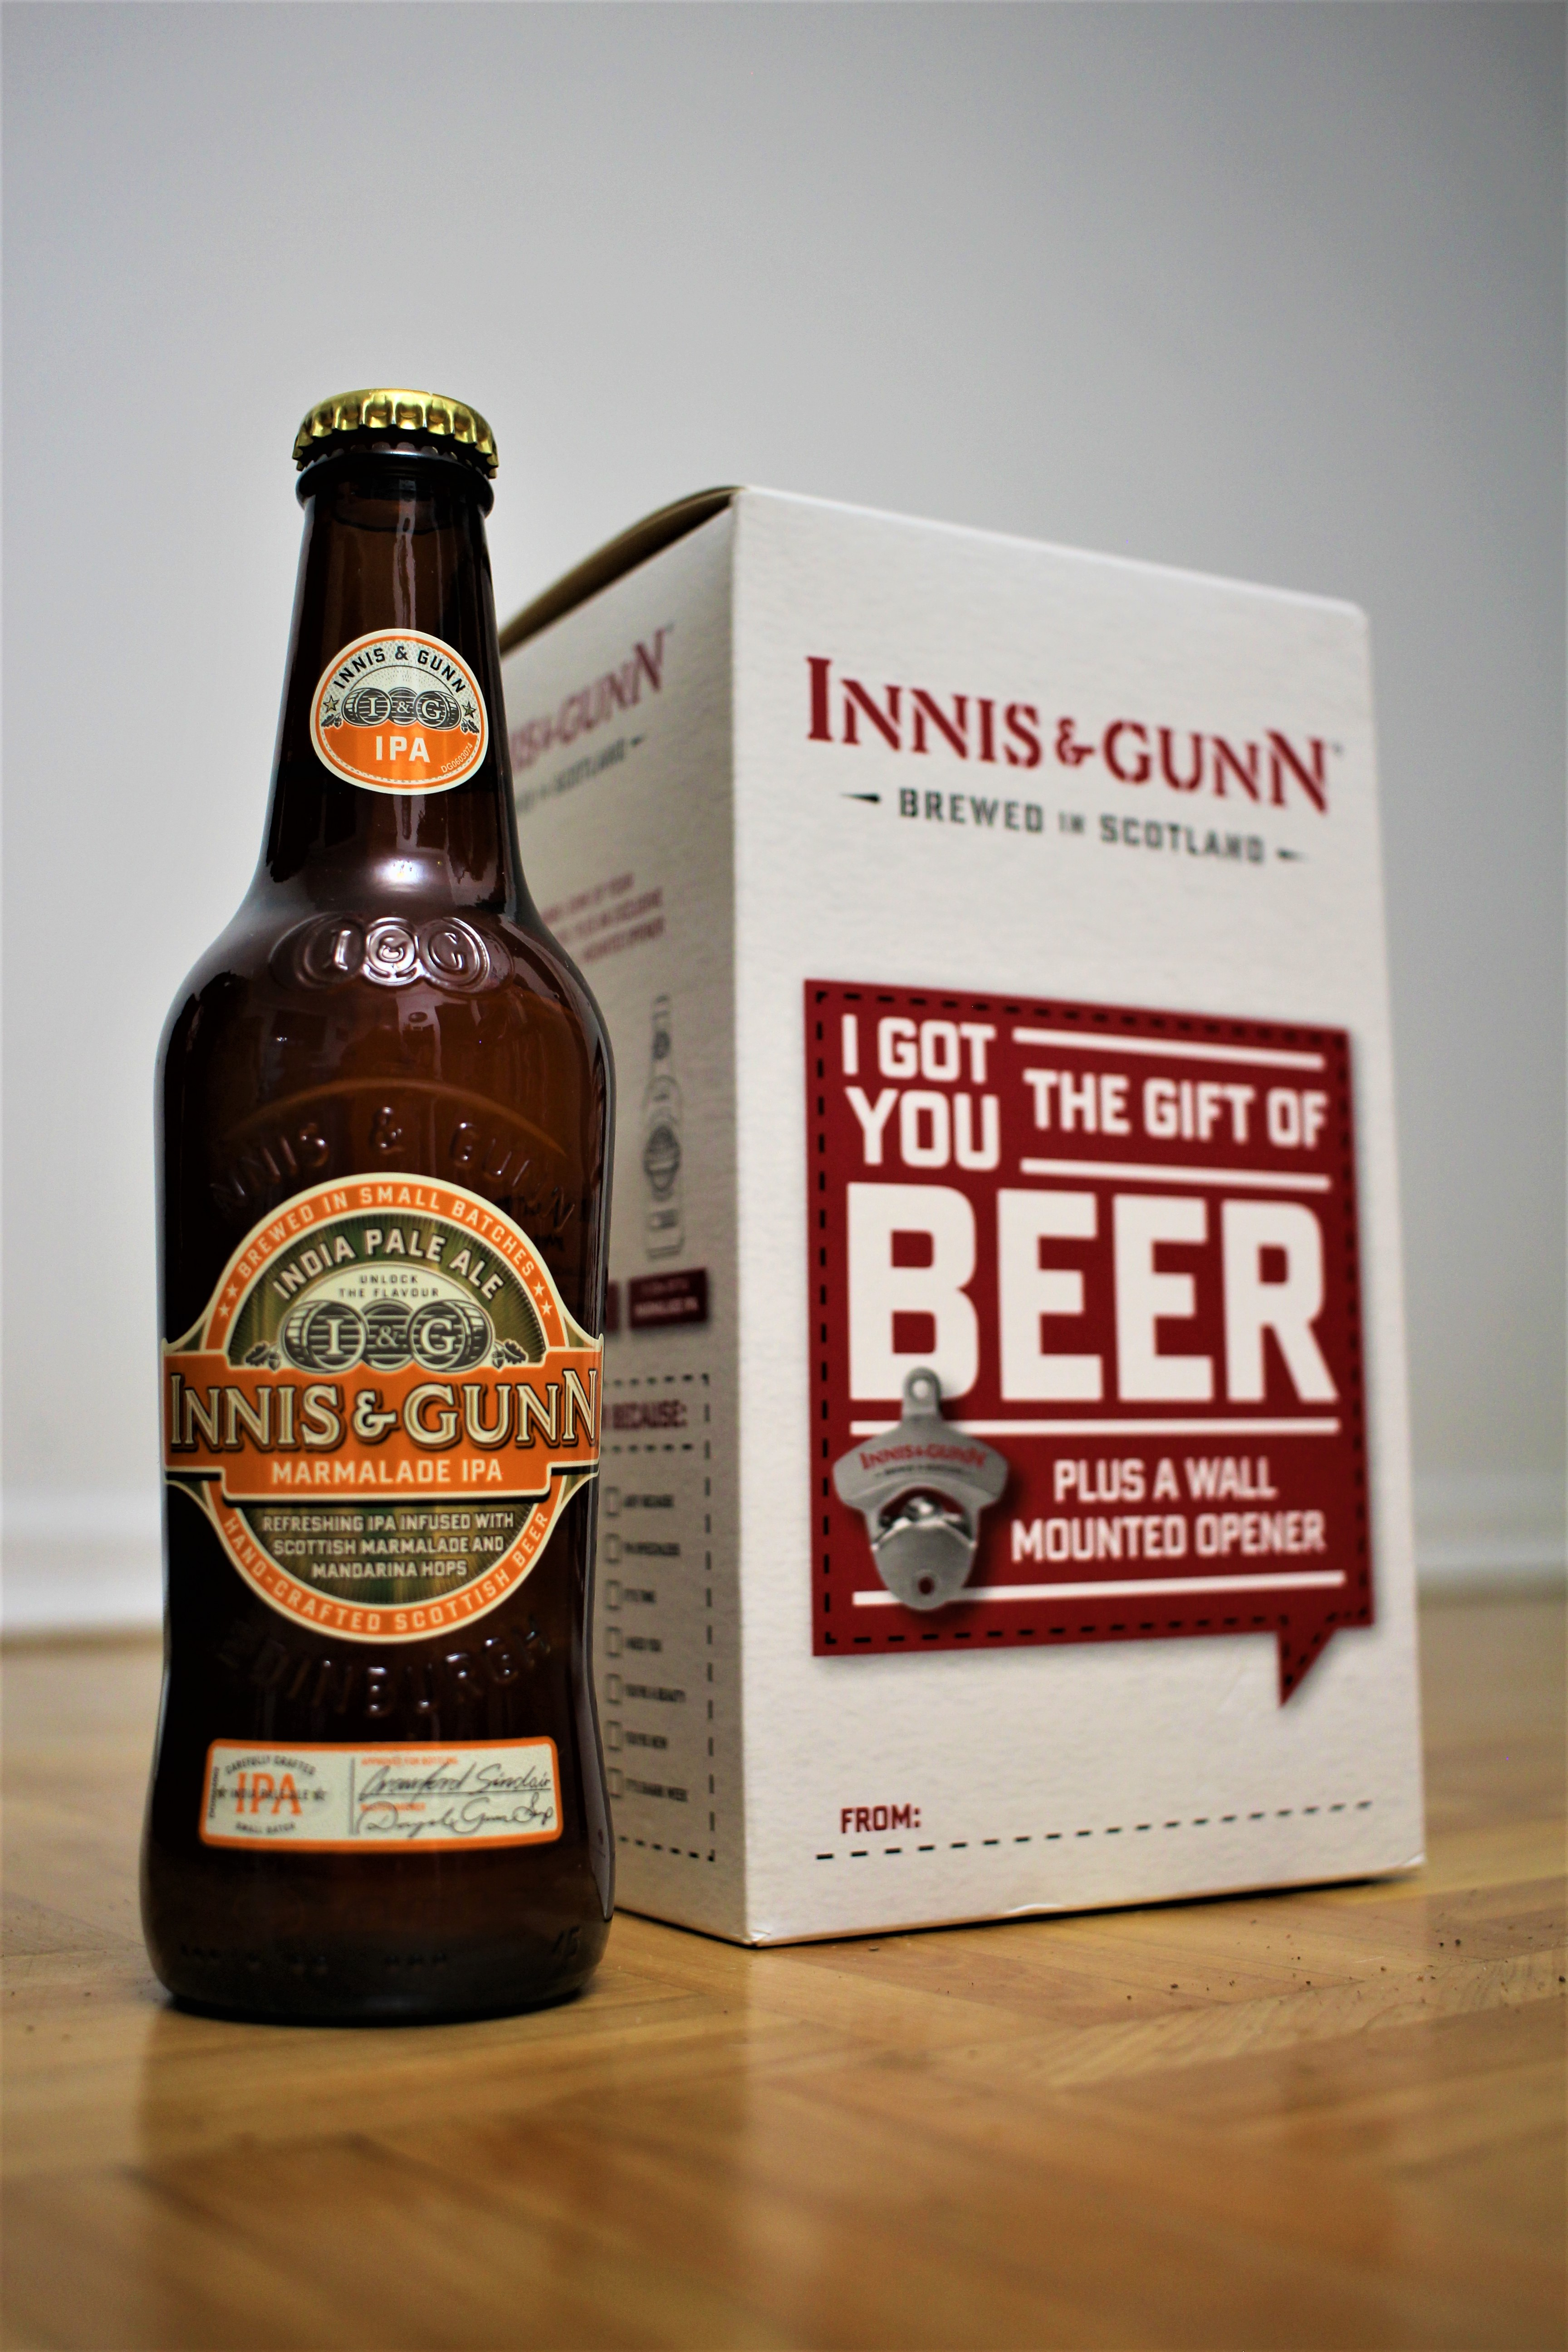 Innis & Gunn Marmalade India Pale Ale with Dad